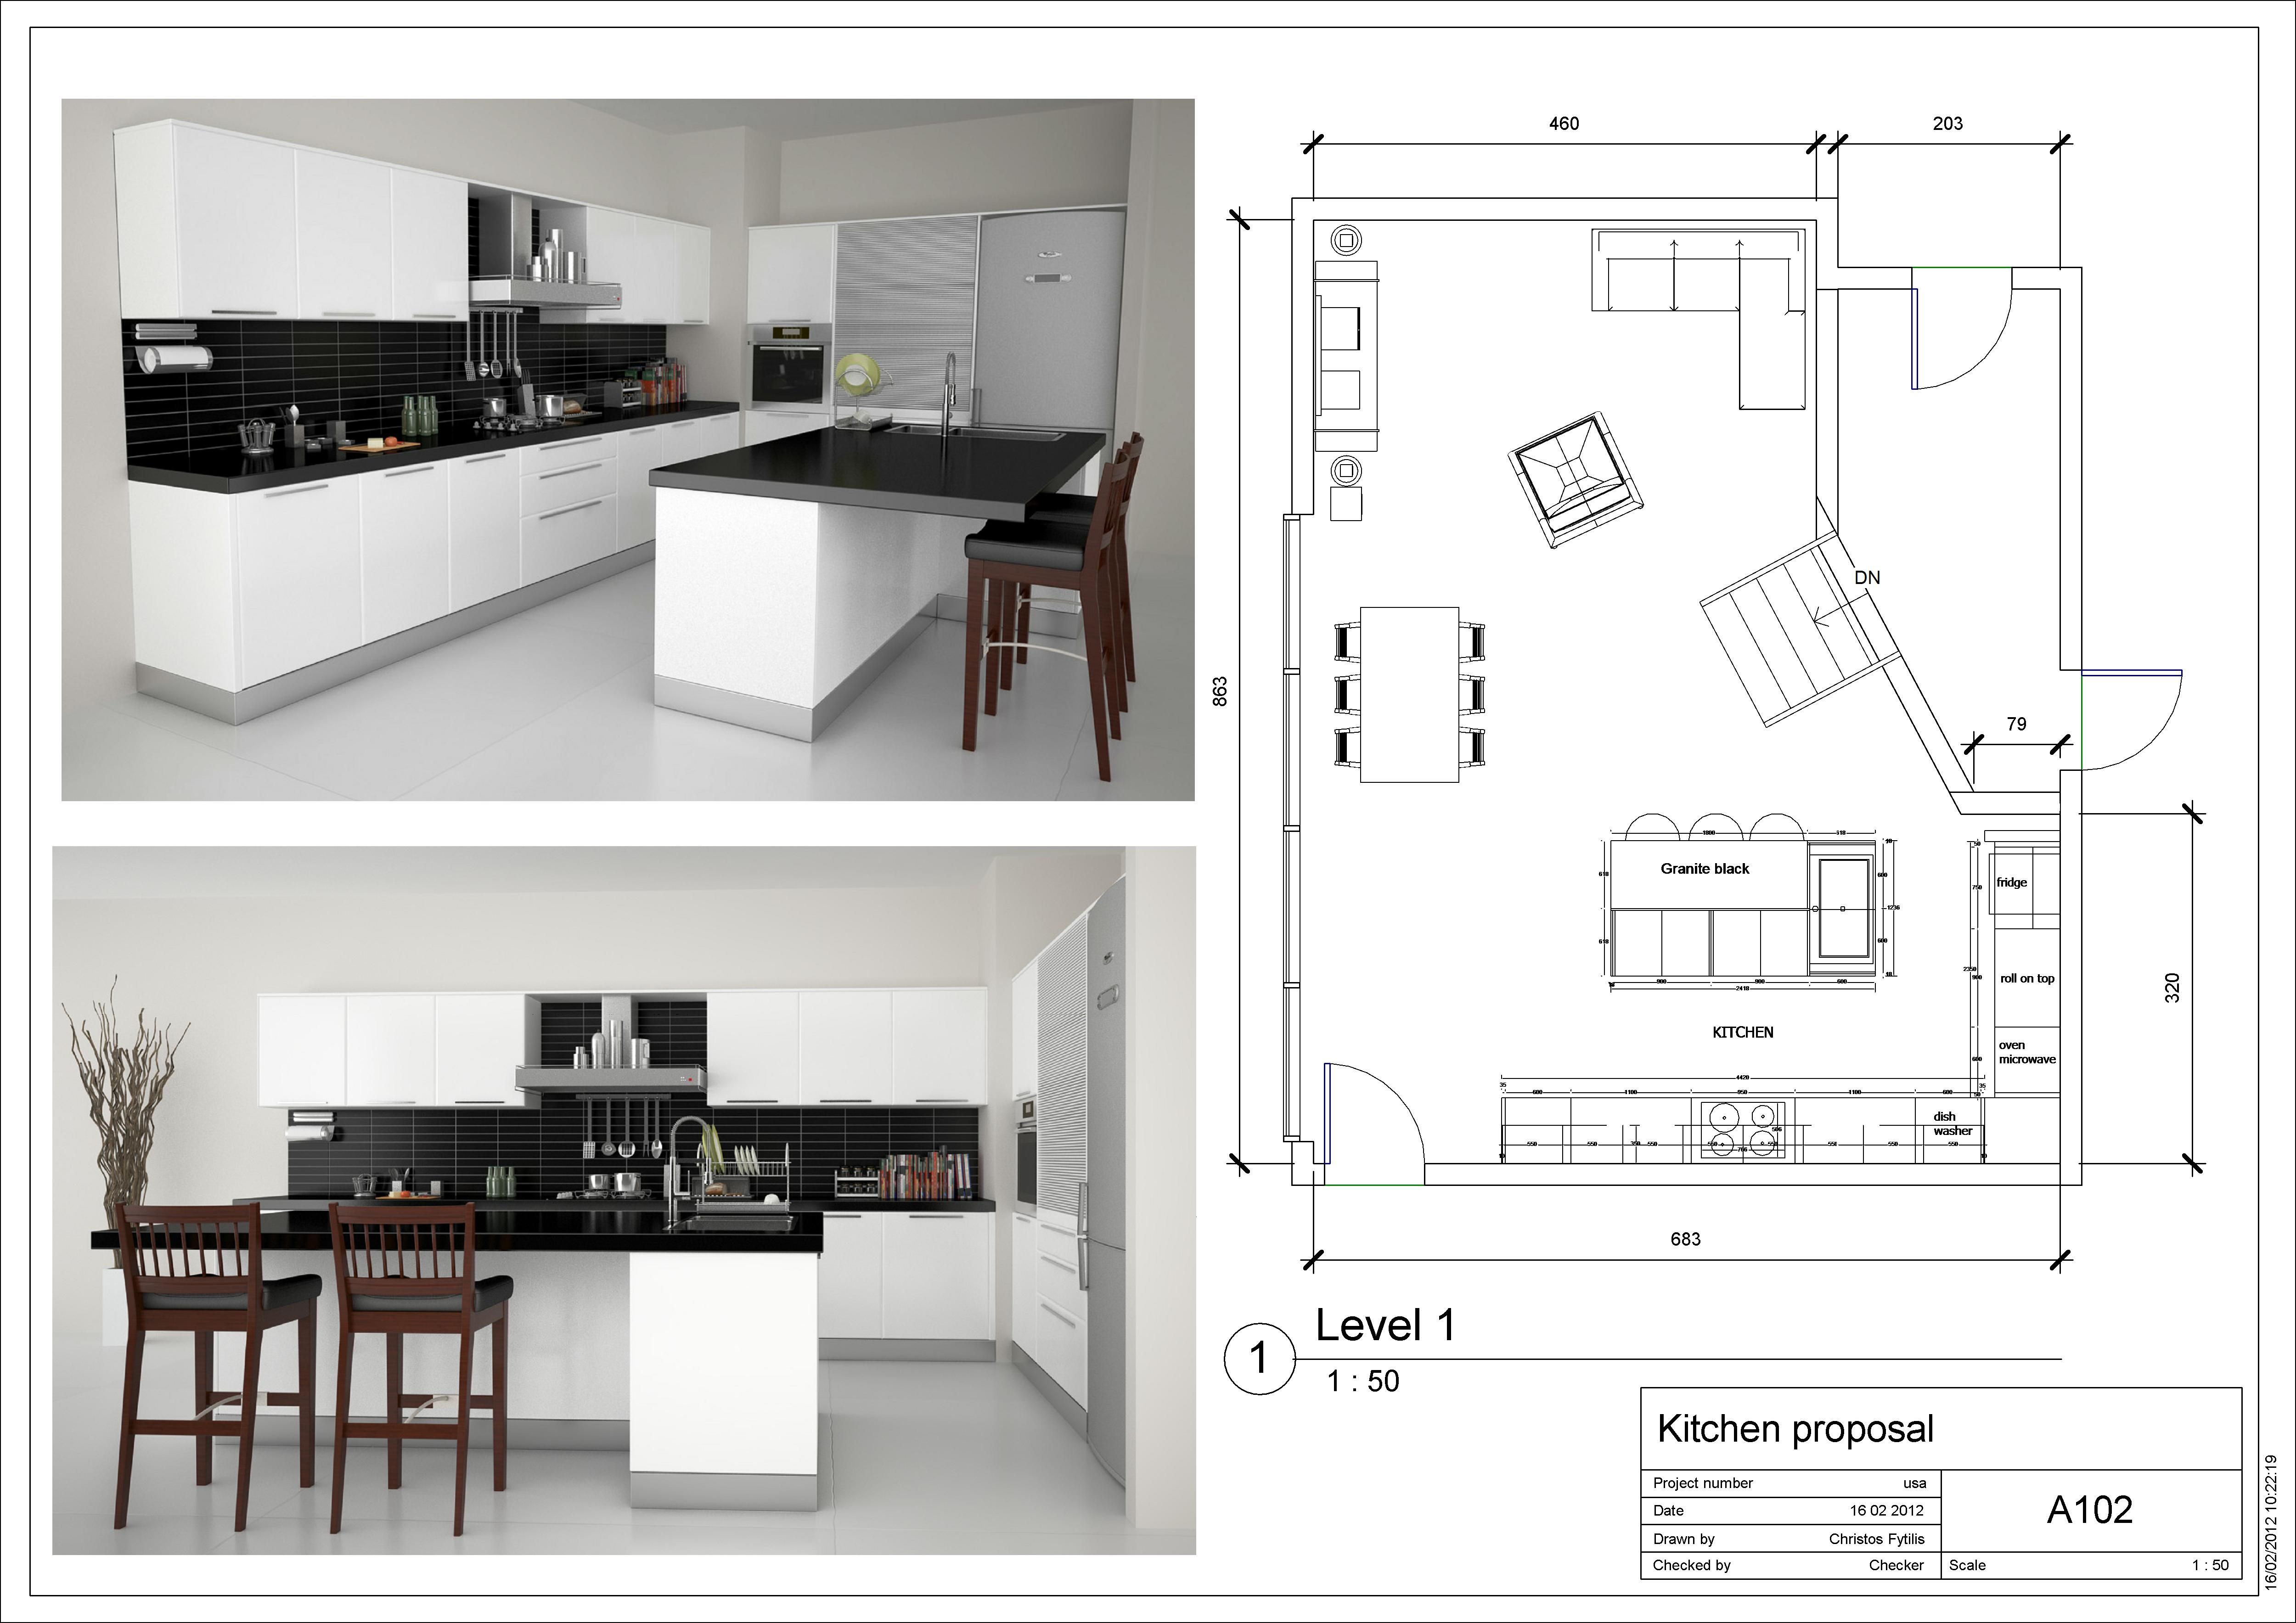 Kitchen floor plan layouts designs for home for Kitchen floor plans